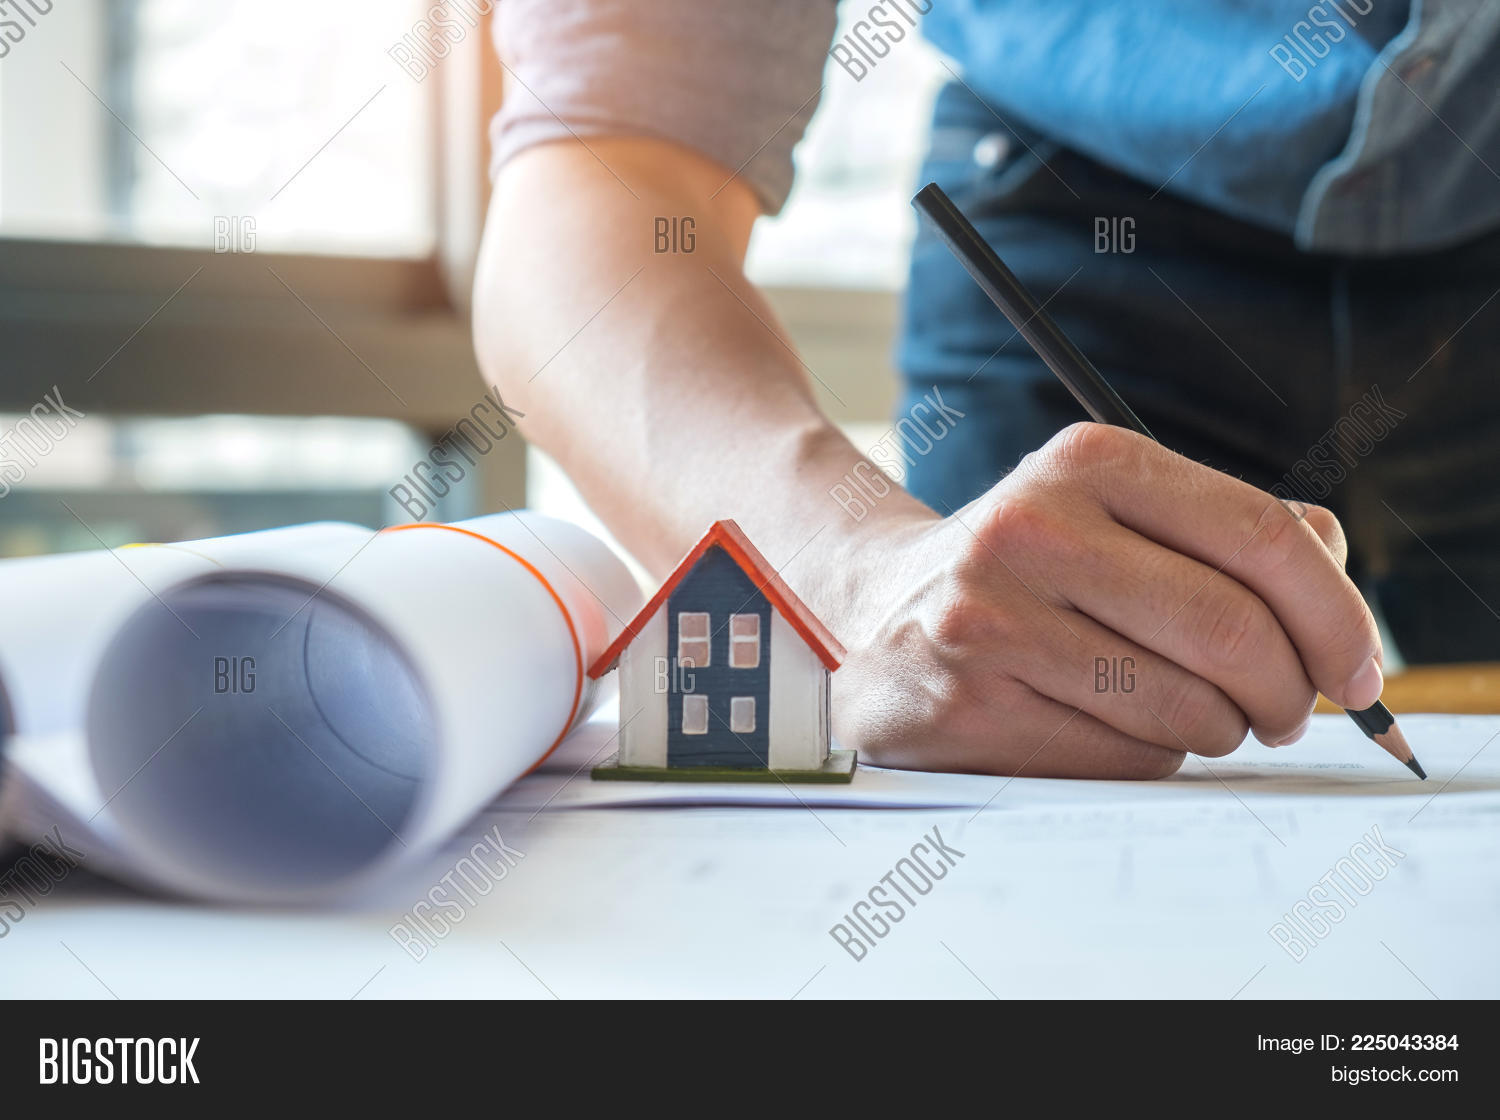 agent,agreement,architect,architectural,architecture,blueprint,building,business,buyer,closeup,concept,construction,contract,customer,design,drawing,engineering,estate,family,finance,home,homeowner,house,housing,industry,investment,loan,model,modern,mortgage,office,paper,paperwork,pen,pencil,plan,project,property,purchase,realtor,residential,sale,scale,sketch,structure,symbol,white